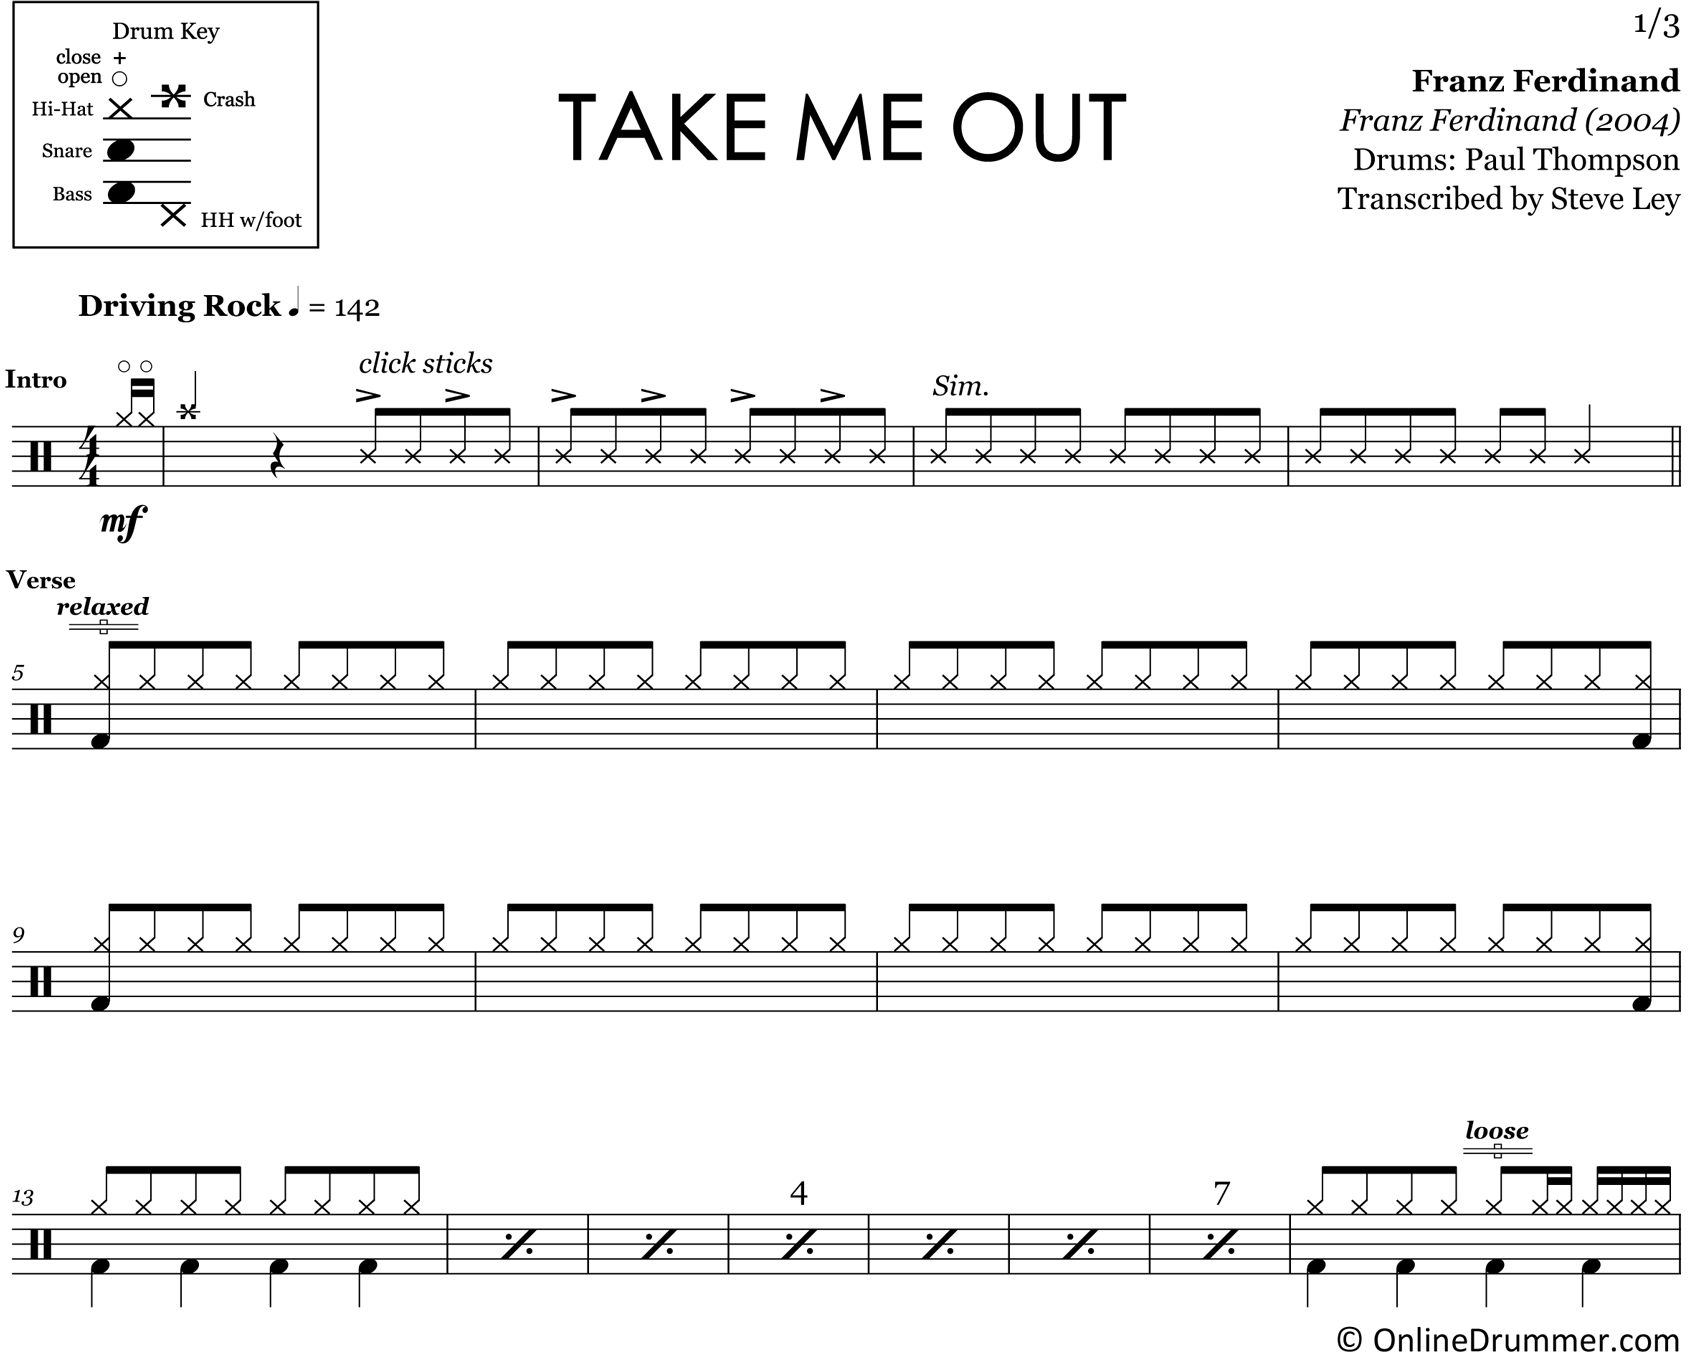 Take Me Out - Franz Ferdinand - Drum Sheet Music